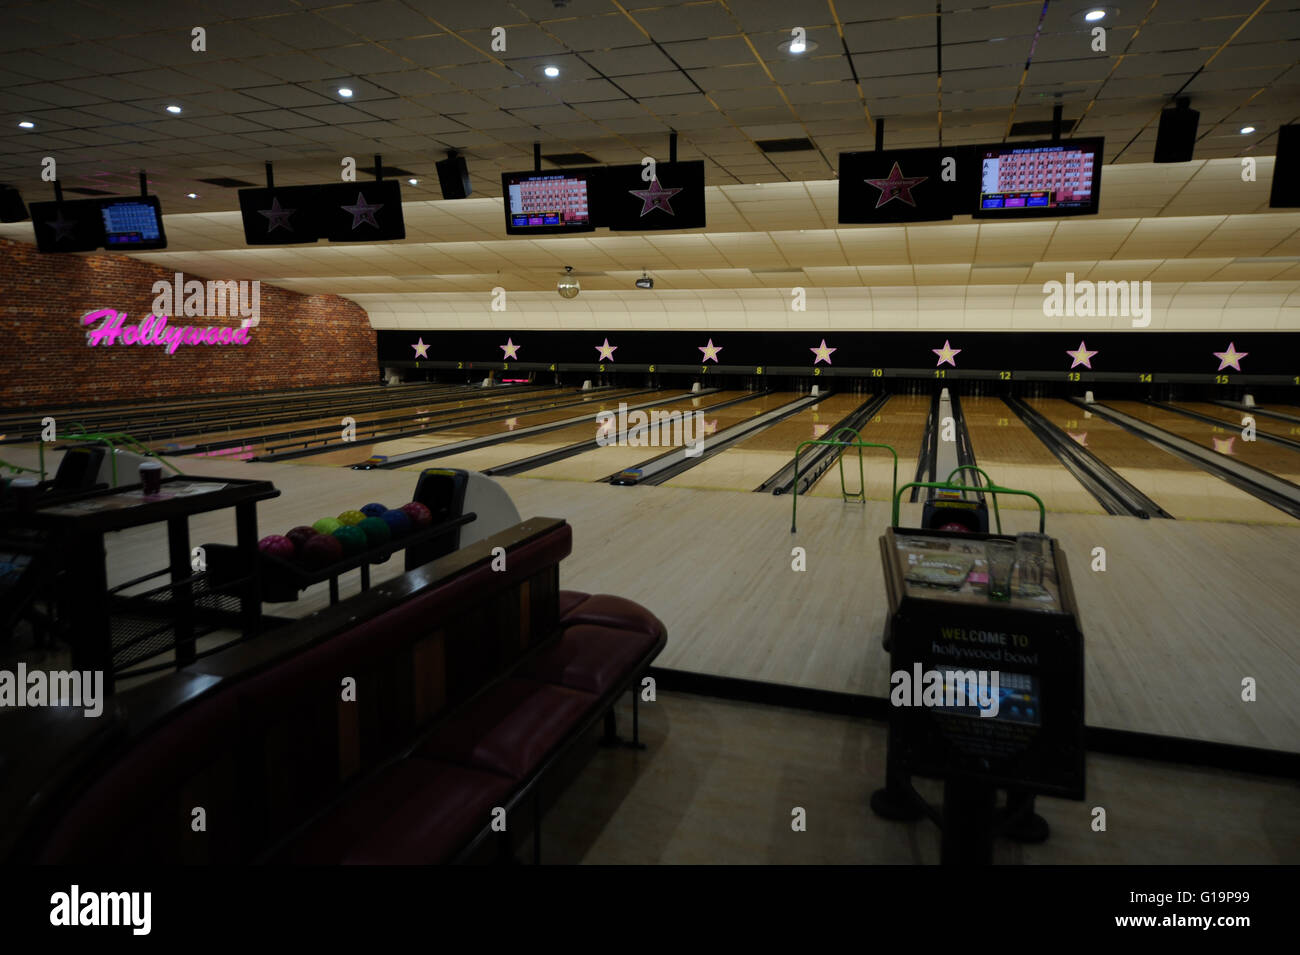 Bowling,The Red Dragon Centre,Hollywood Bowl,UK - Stock Image